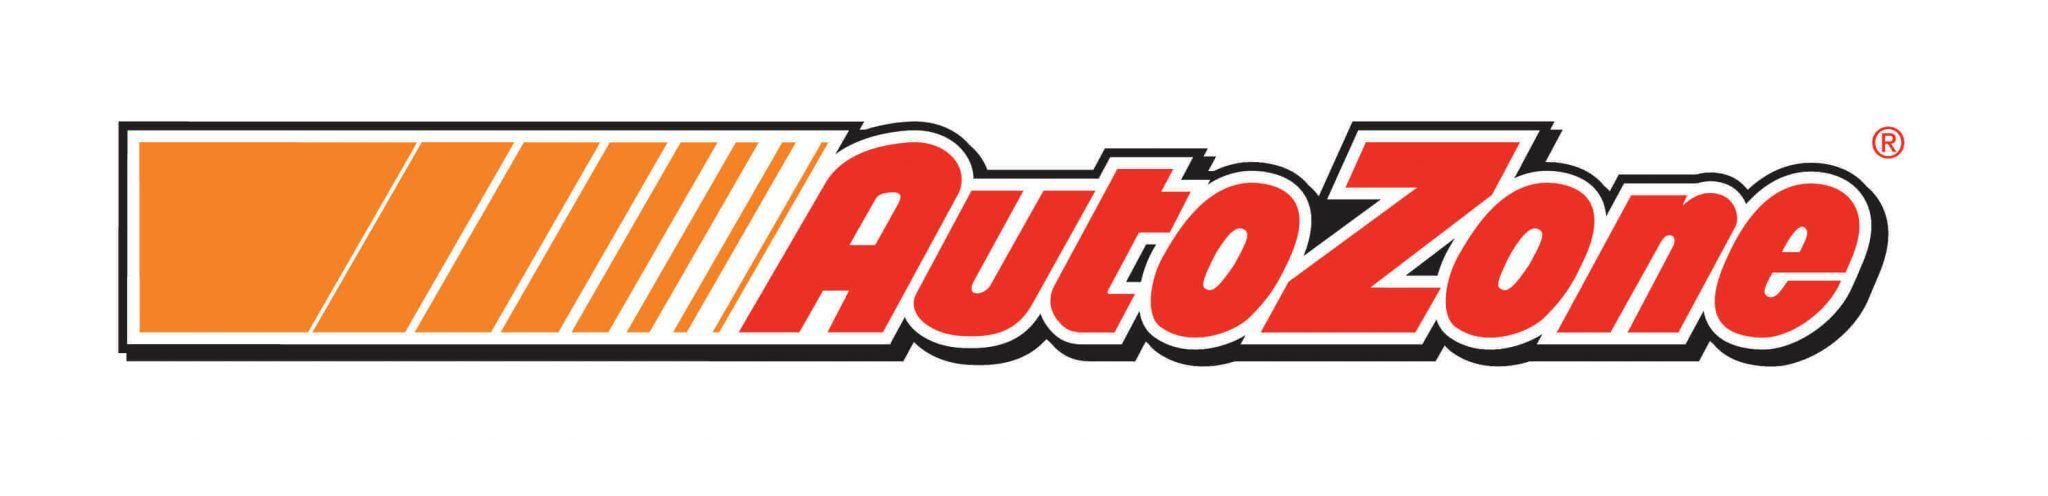 The following article contains information on auto zone new store